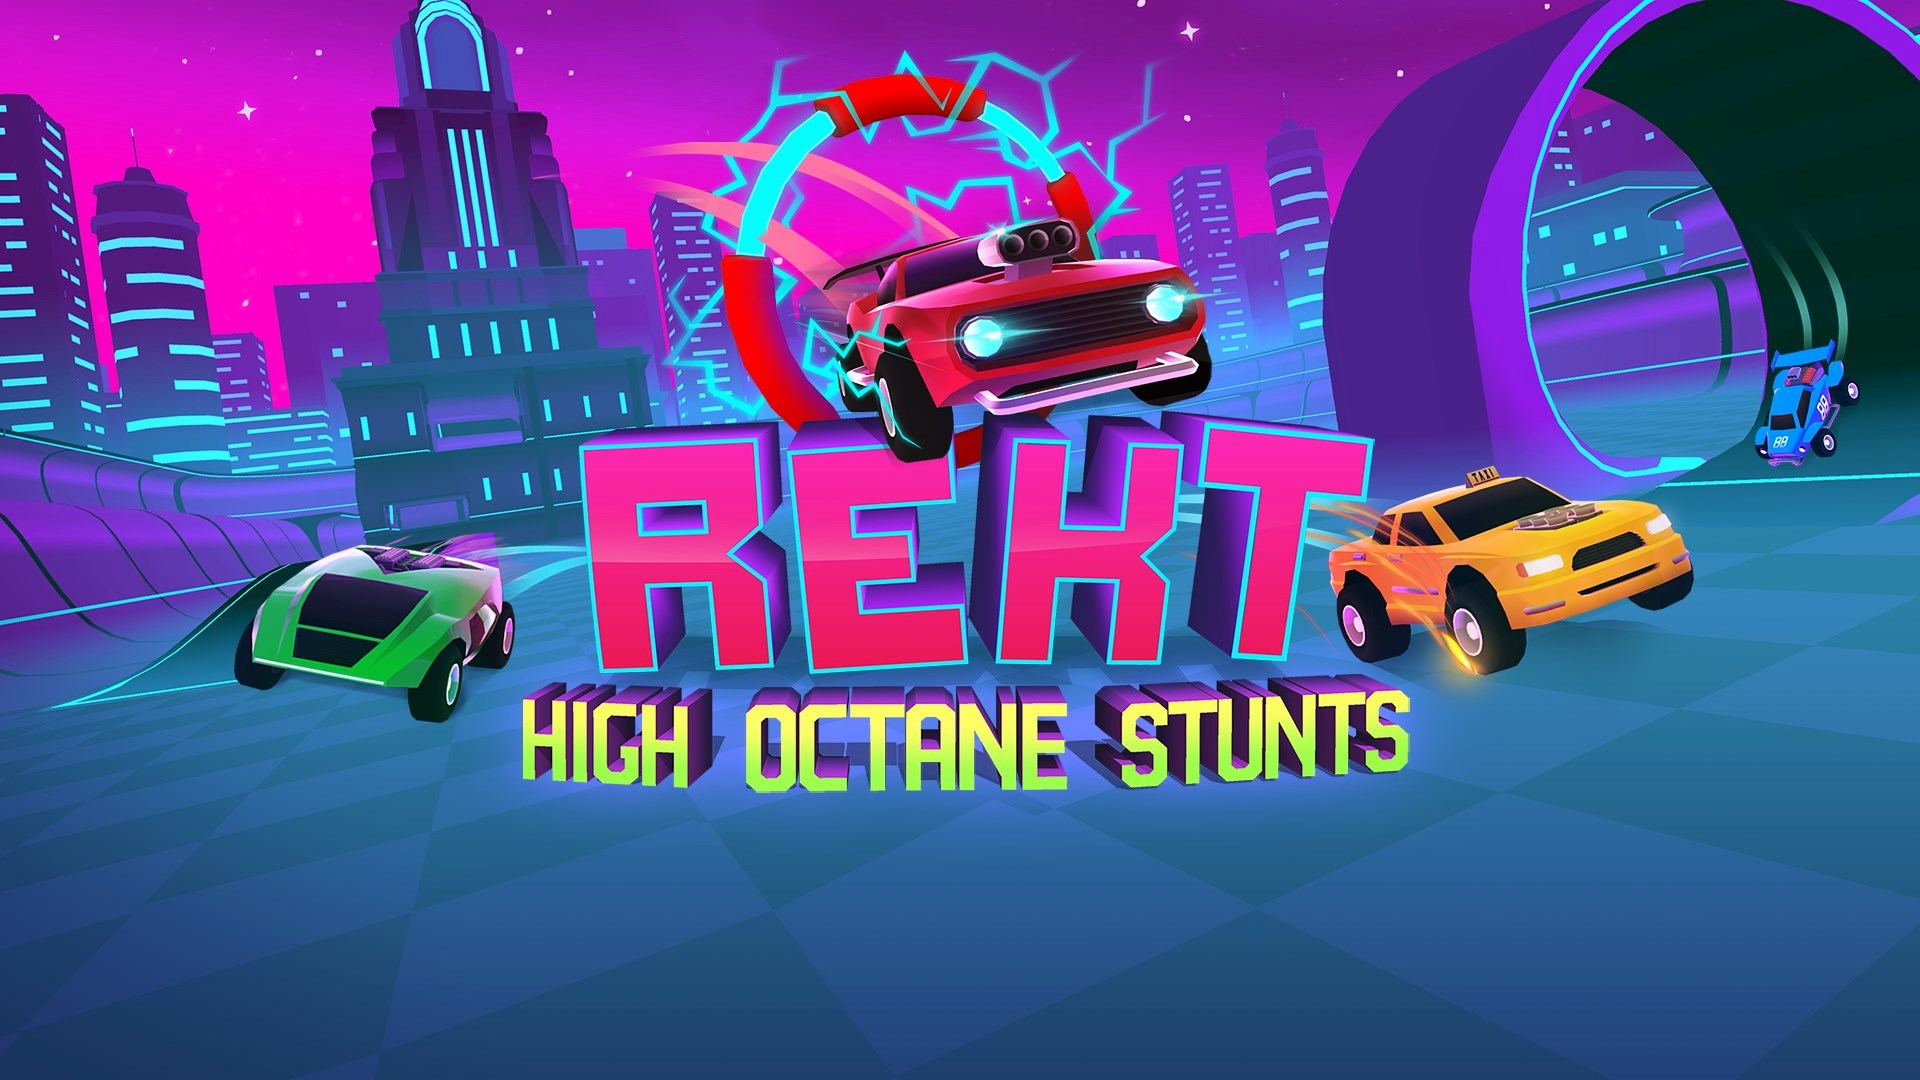 REKT! High Octane Stunts Is Now Available For Digital Pre-order And Pre-download On Xbox One And Xbox Series X|S 1